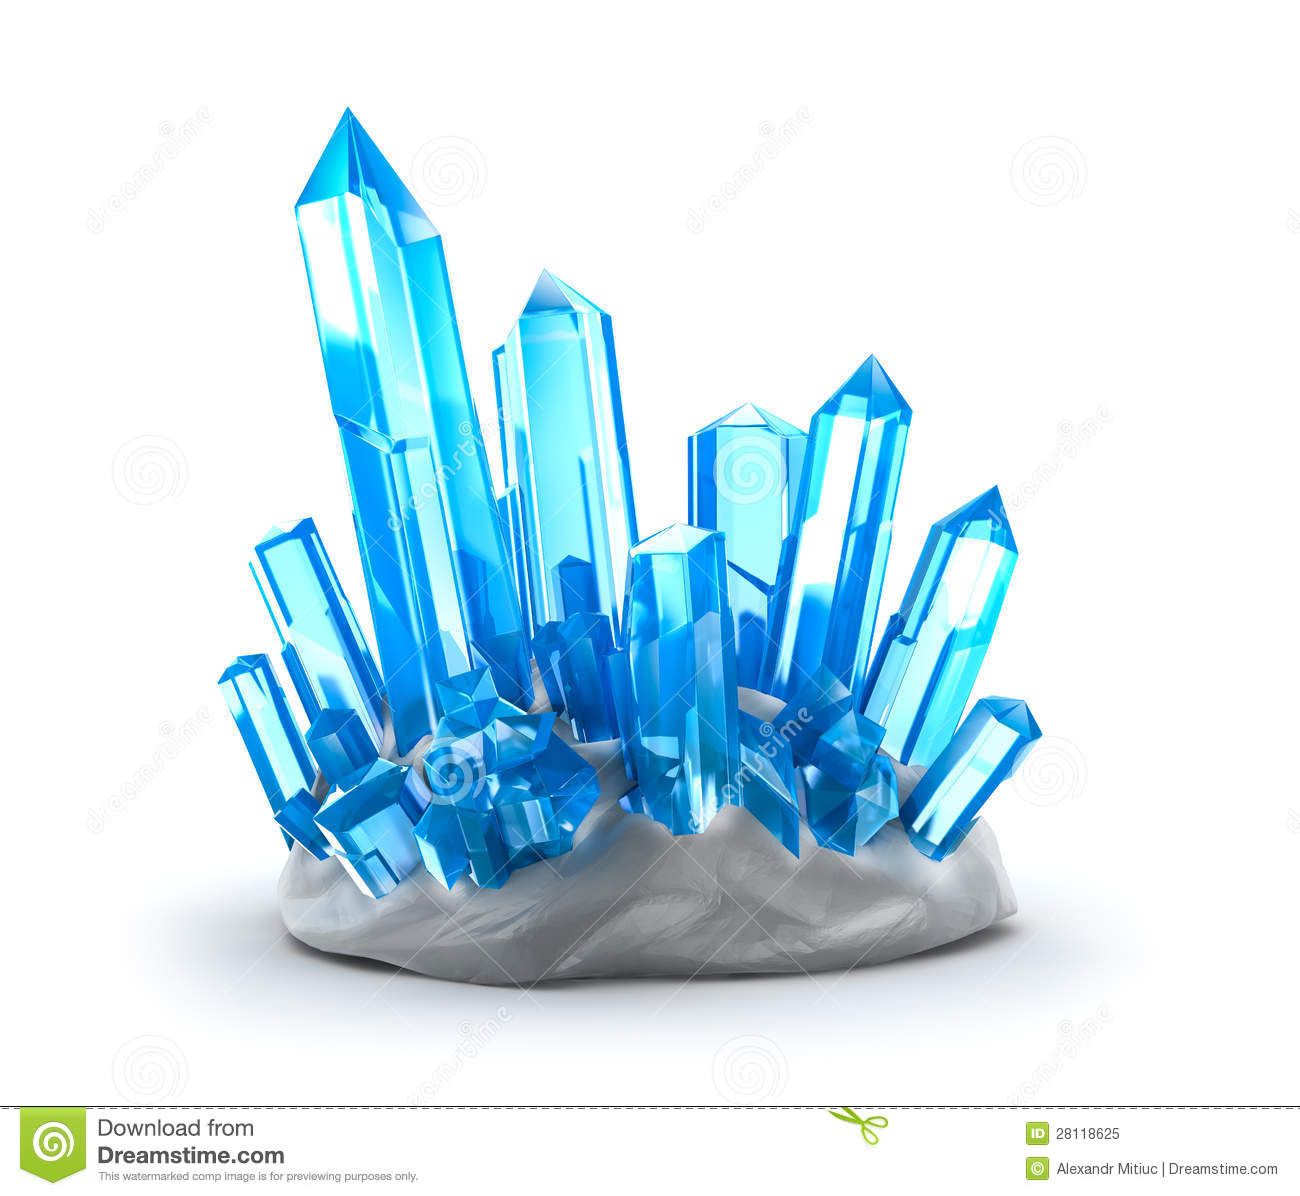 Crystals clipart rock mineral Clipart Crystals Download Growing Crystals